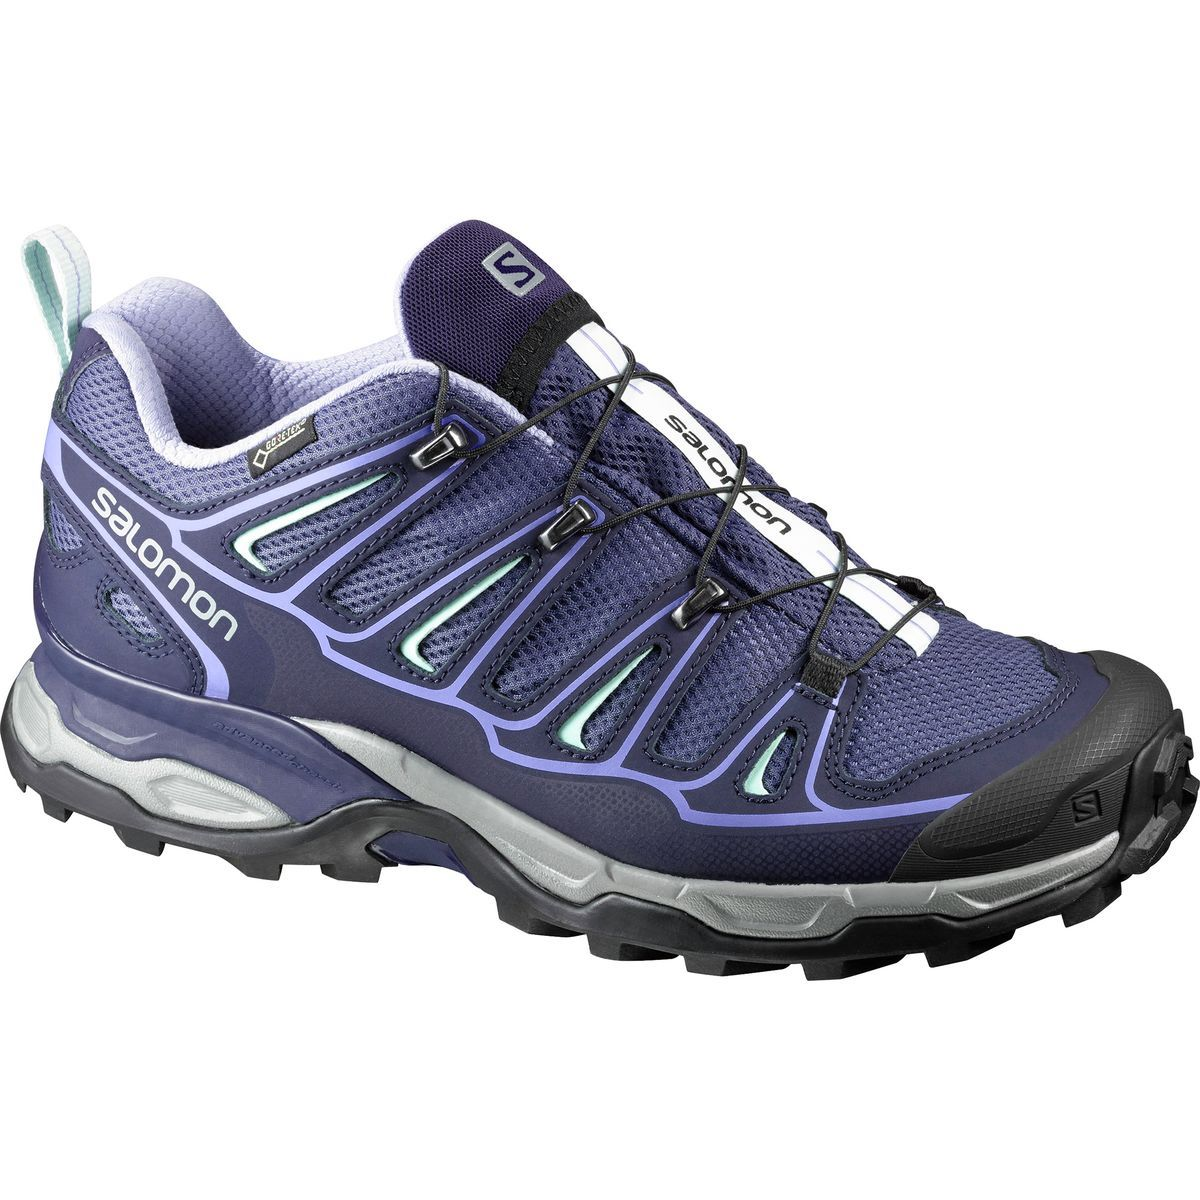 X Ultra 2 GTX Light Trail Shoes: Light but technical trail shoes with a  waterproof-breathable membrane and a stable underfoot chassis for fast  hiking on ...